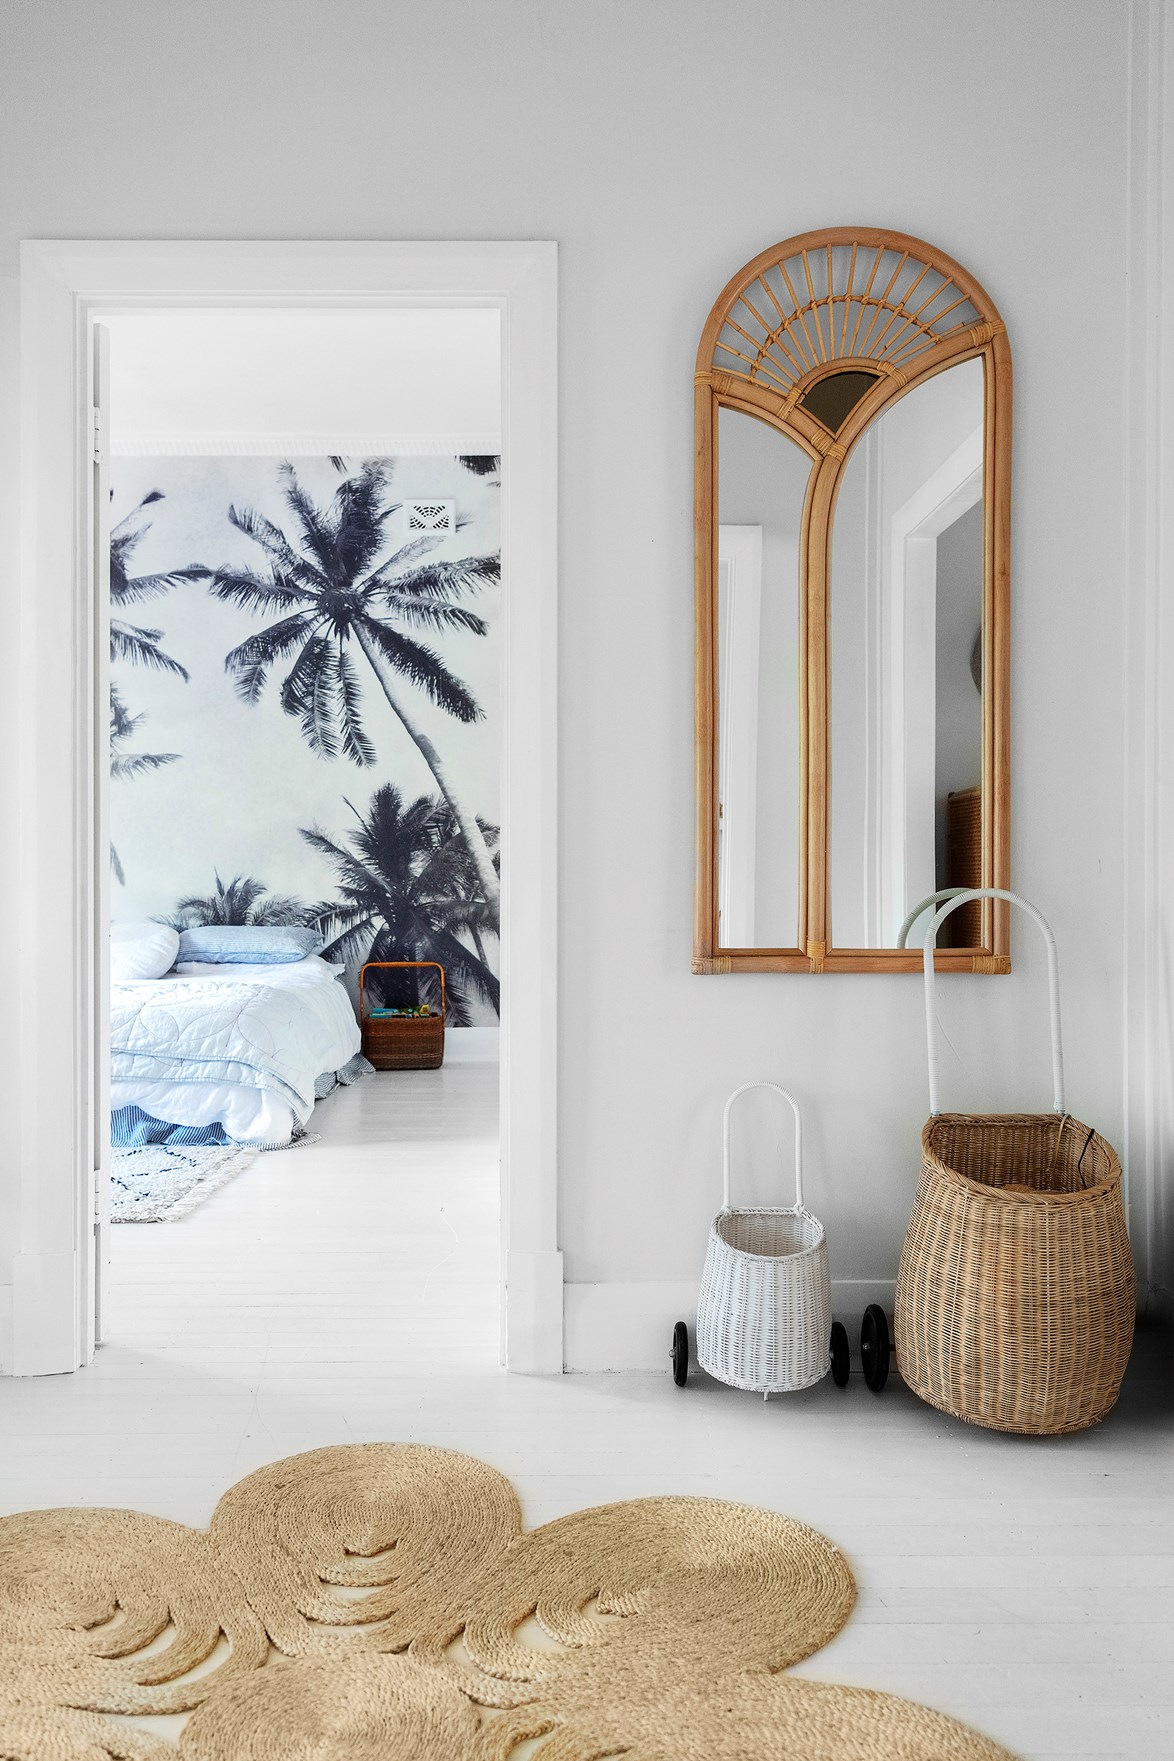 "**Mirrors:** A vintage cane mirror creates a focal point in the entryway of this [Calfornia-style bungalow](https://www.homestolove.com.au/california-bungalow-fremantle-21075|target=""_blank""). Not only do mirrors add decorative flair, the help to bounce light around a home and reflect particularly pretty views. They are also essential for last minute make-up and hair checks before you walk out the door."